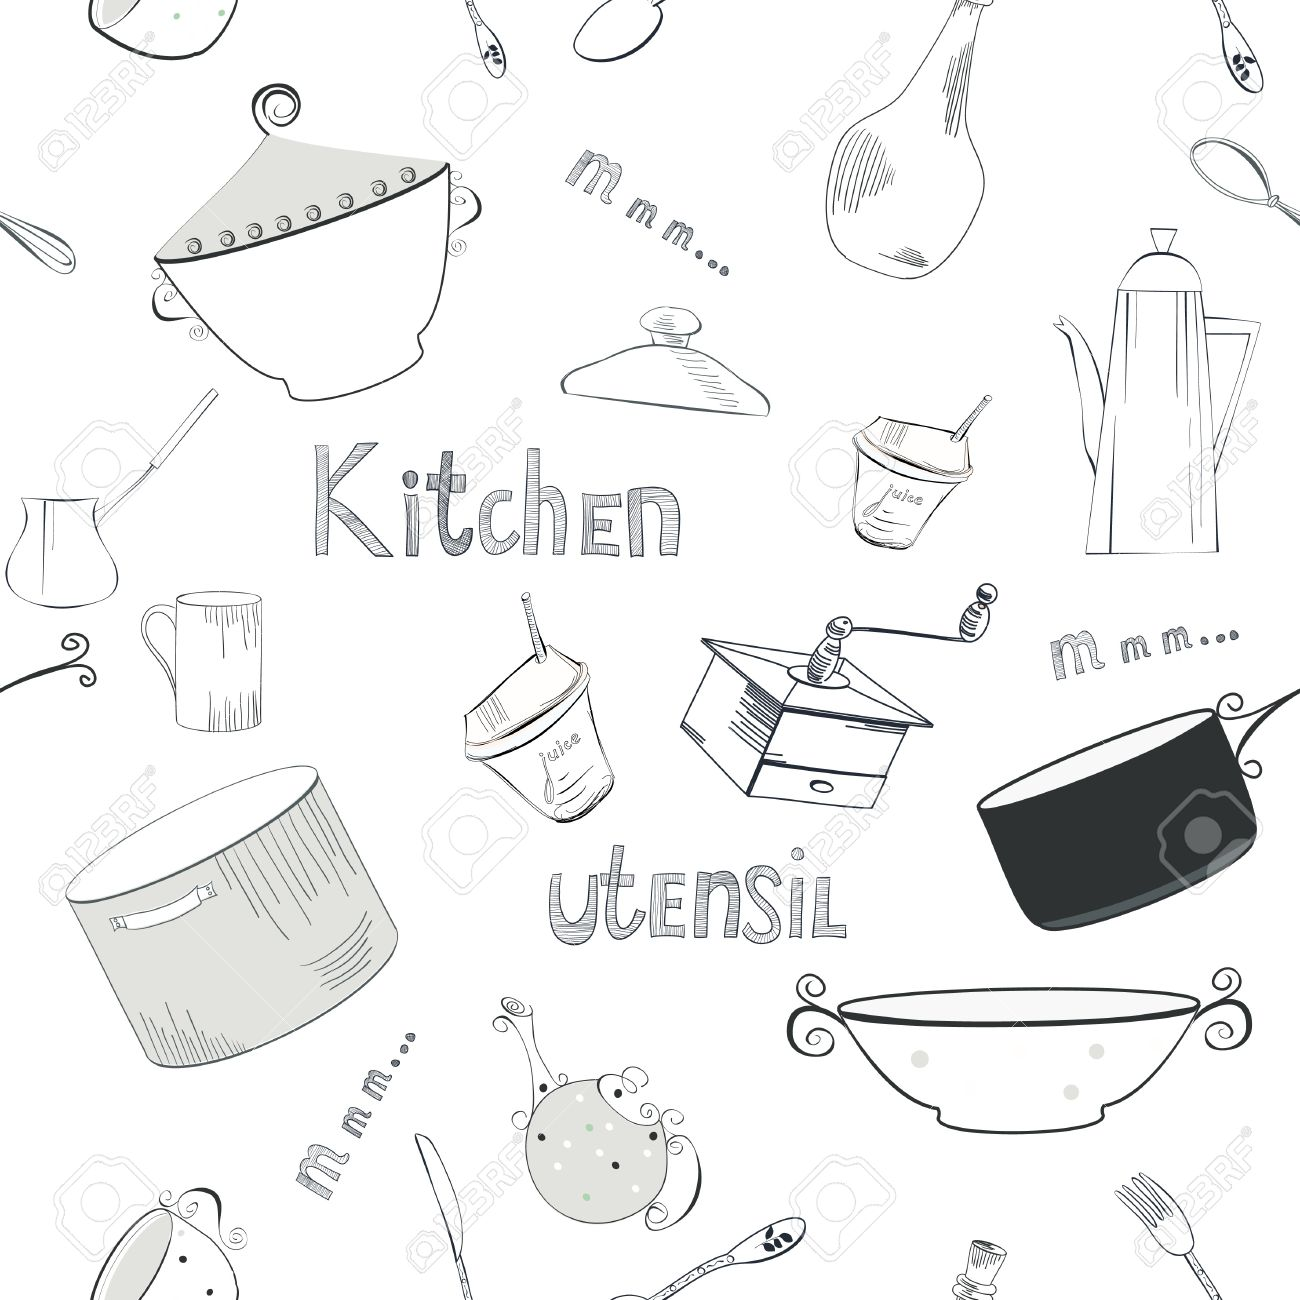 Kitchen Utensils Wallpaper seamless wallpaper with utensils royalty free cliparts, vectors